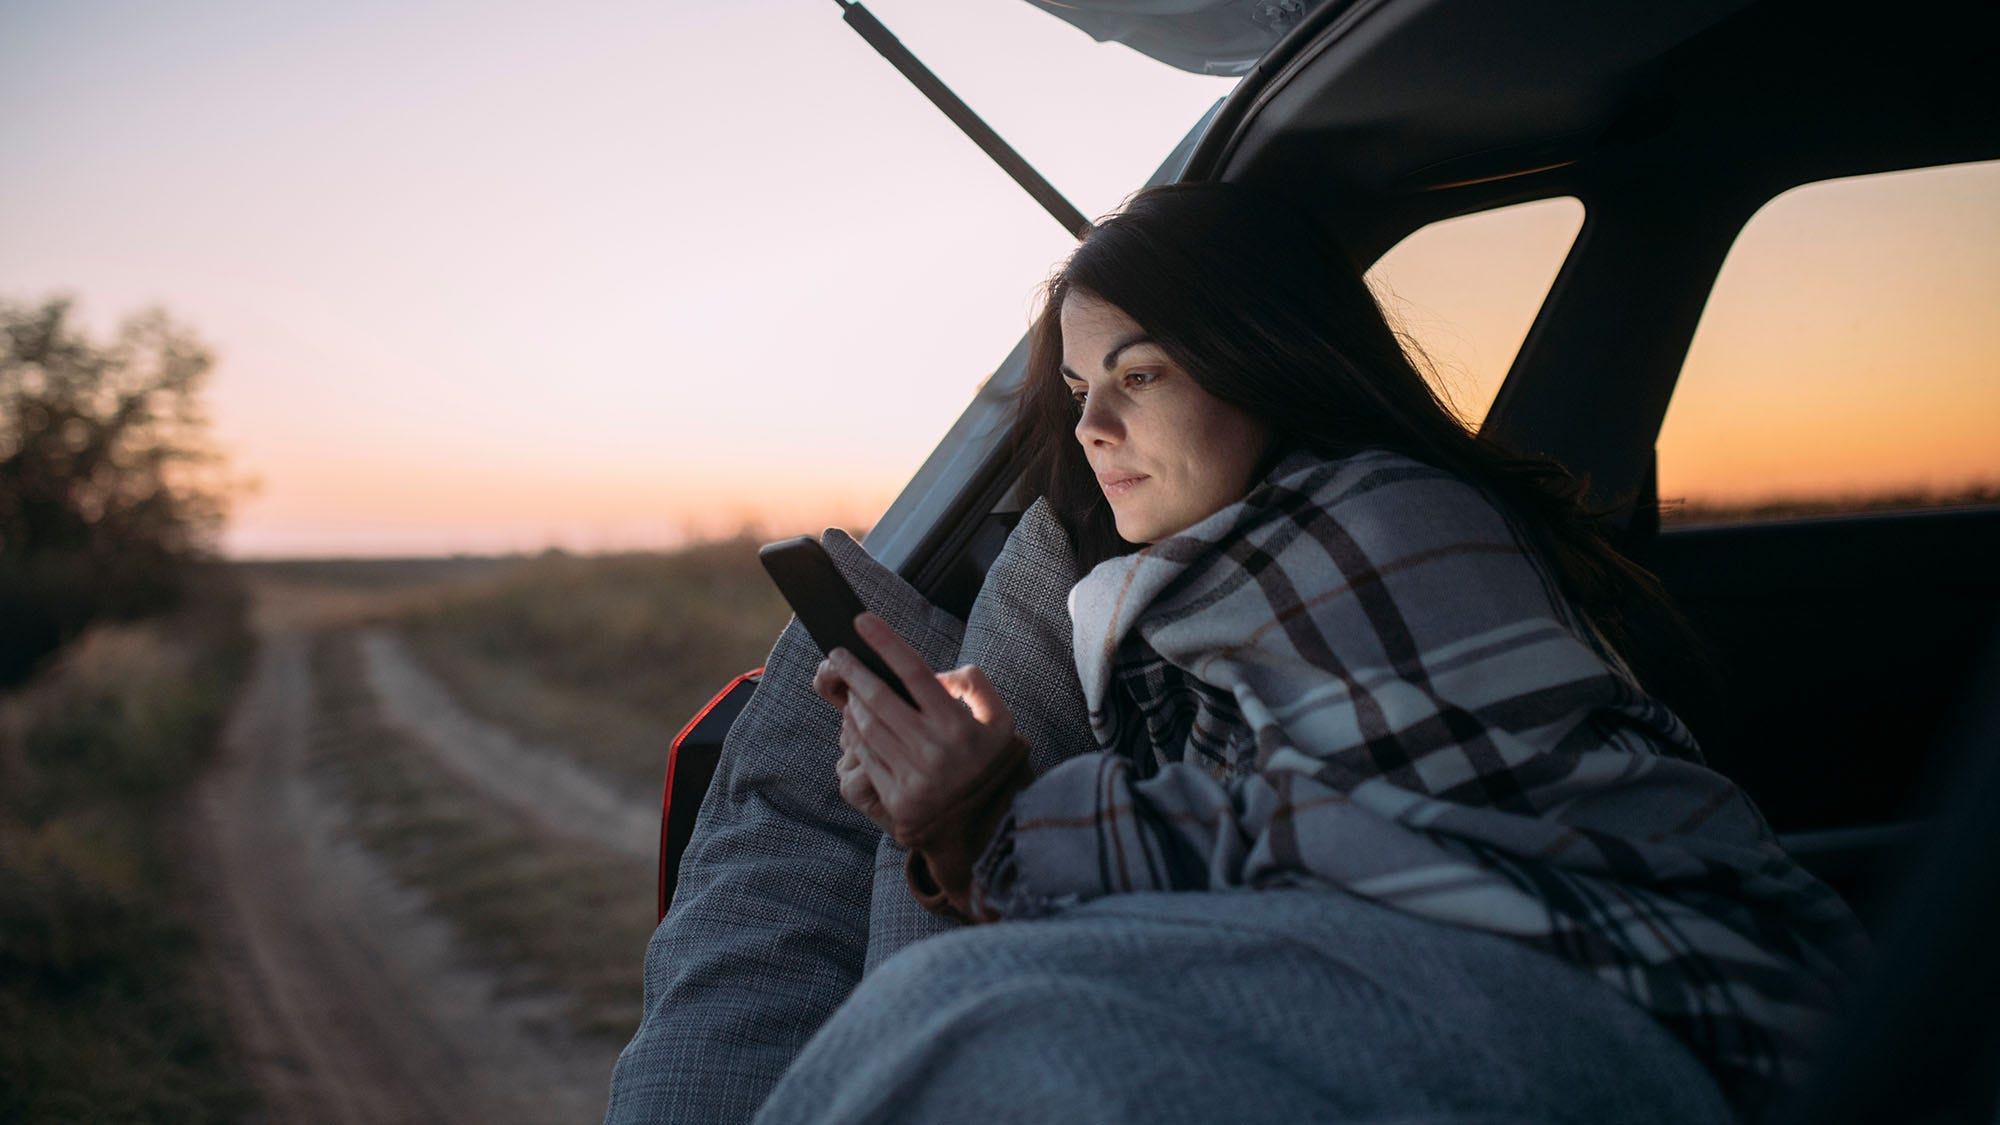 7 Awesome Ultralight Blankets For Air Travel, Road Trips, And More